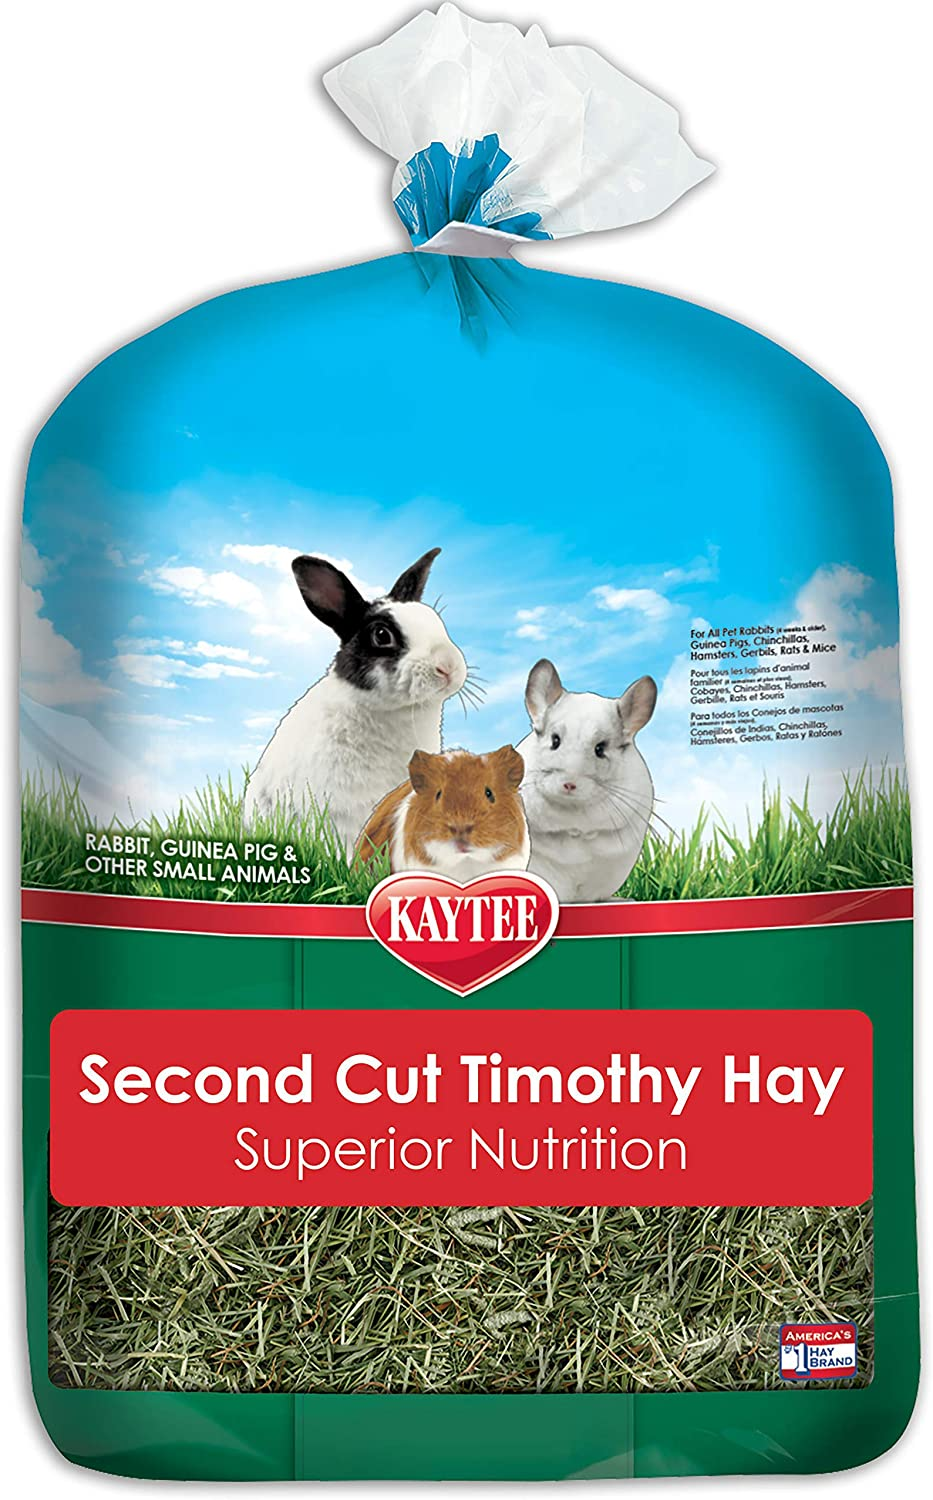 Kaytee Timothy Hay - 1st Cut or 2nd Cut - 6.5 lbs